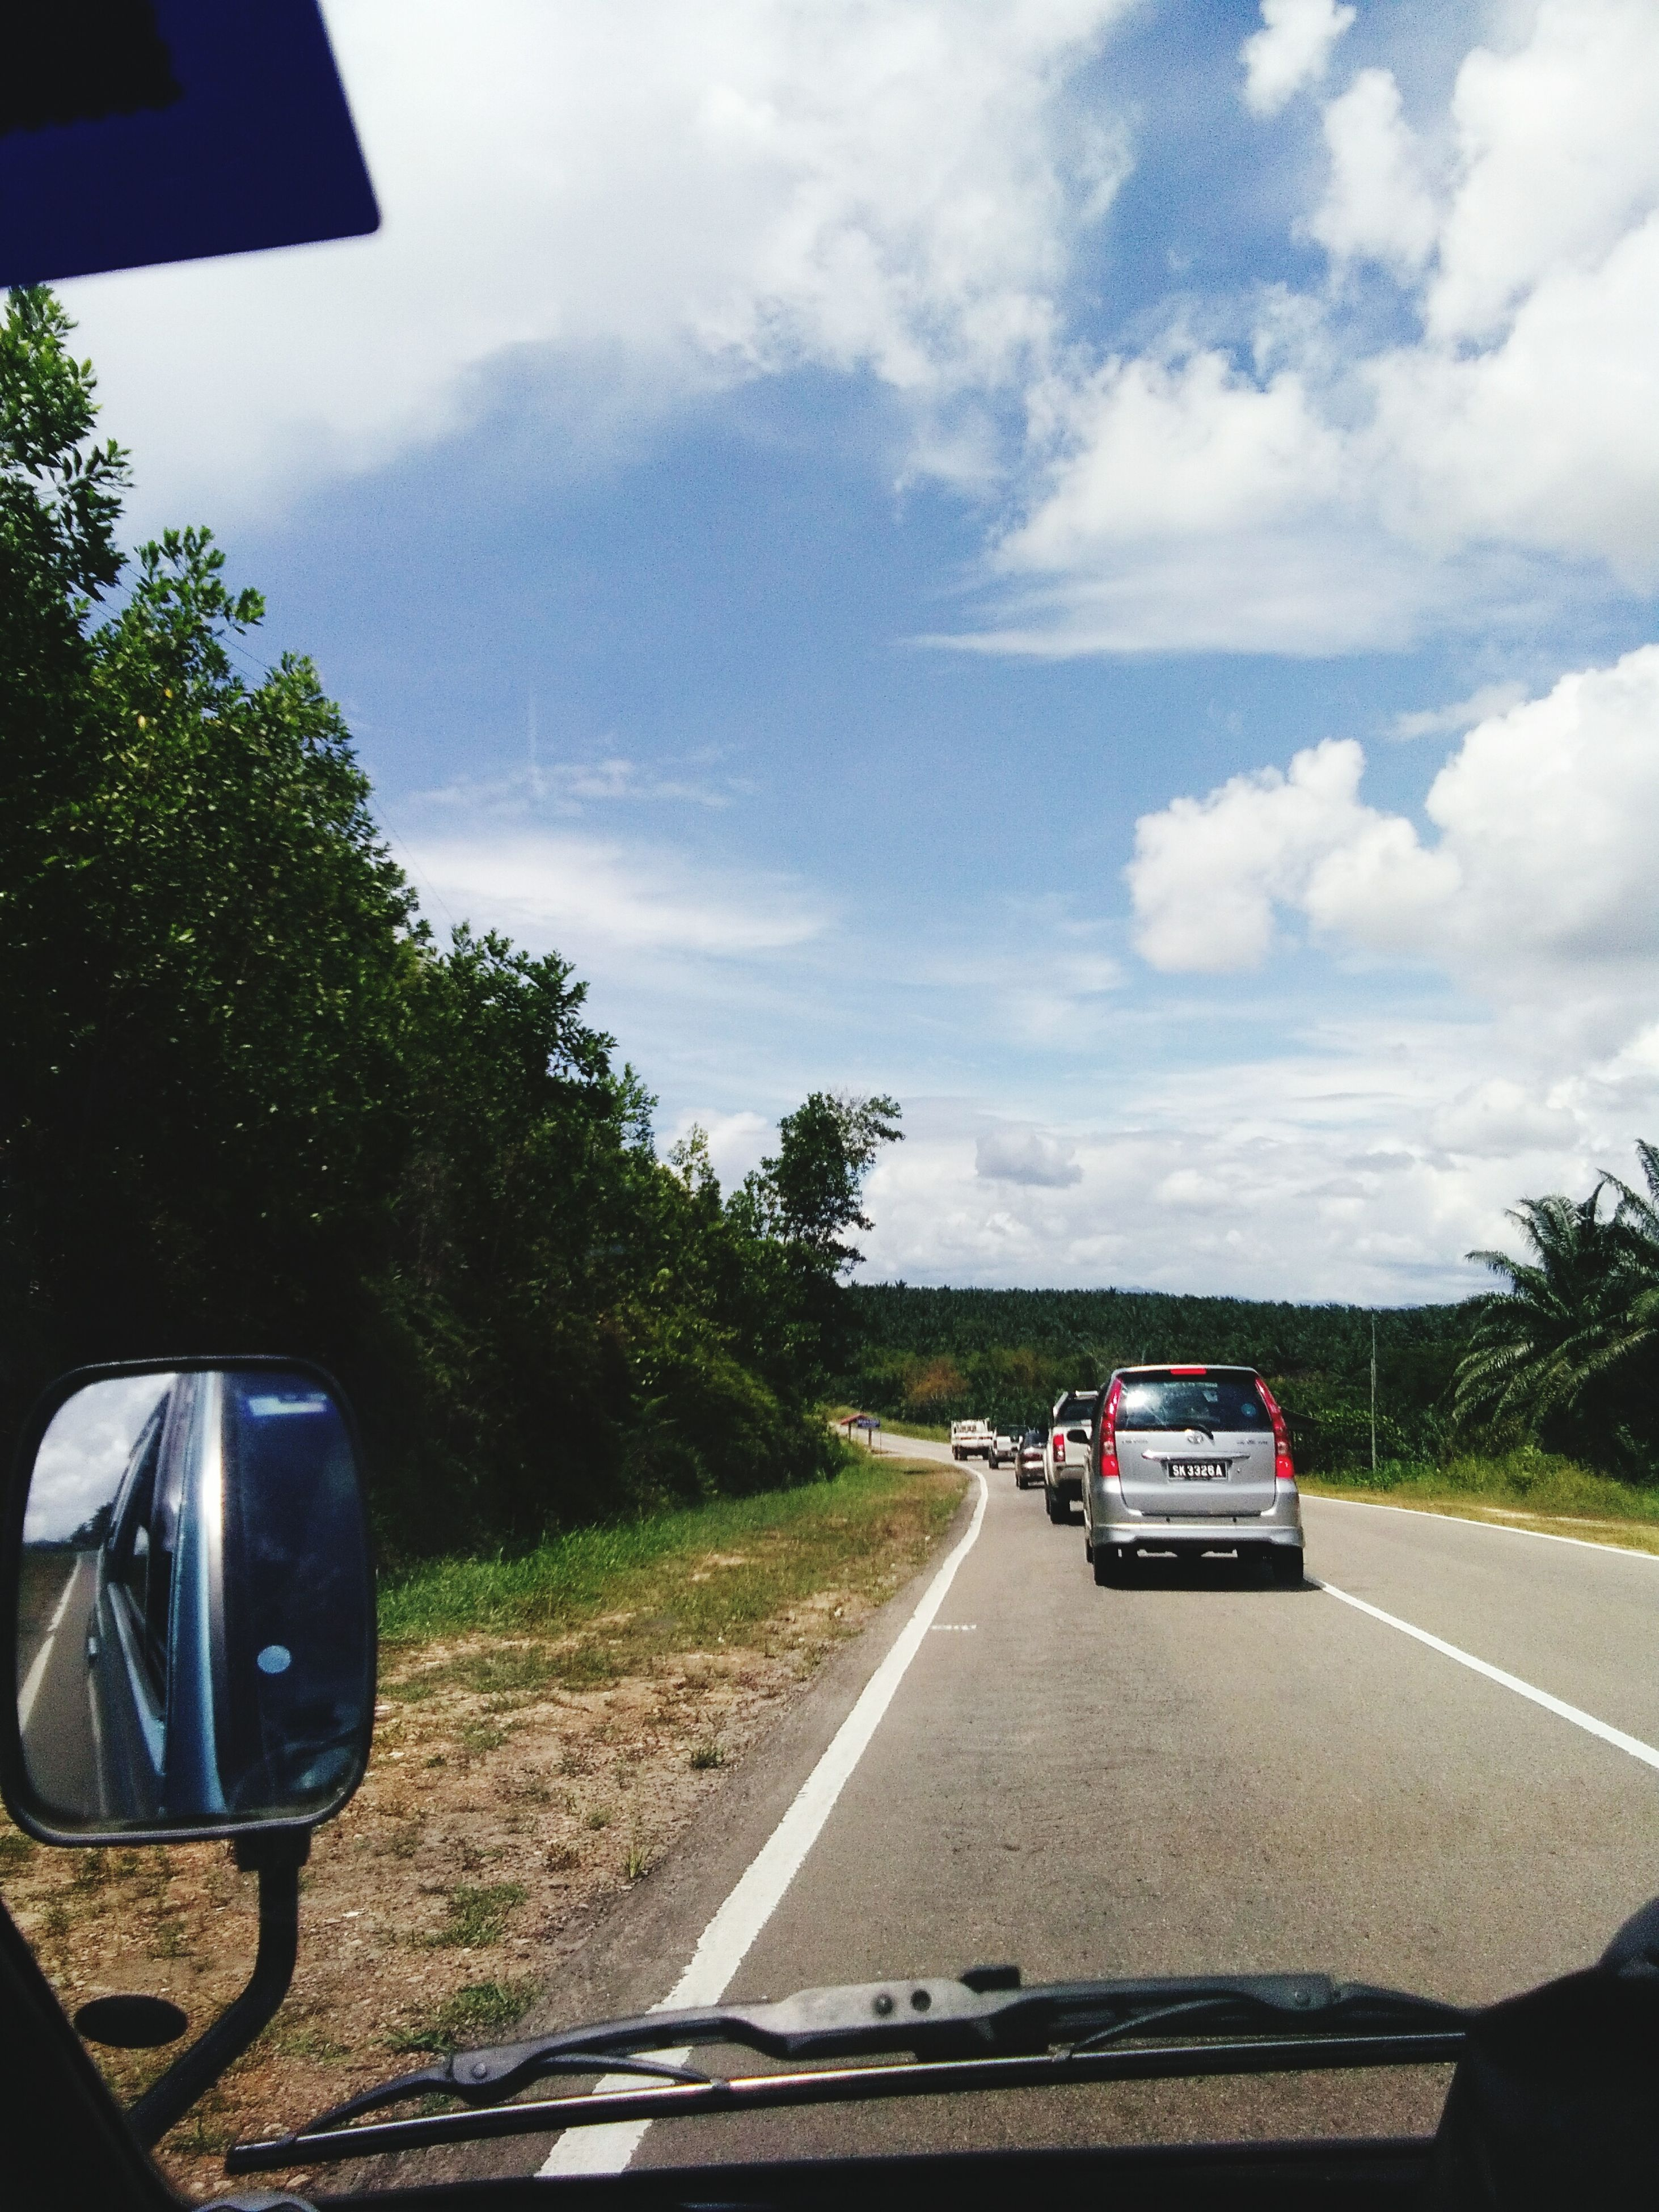 car, transportation, land vehicle, road, mode of transport, sky, cloud - sky, day, tree, car interior, side-view mirror, driving, outdoors, no people, road trip, nature